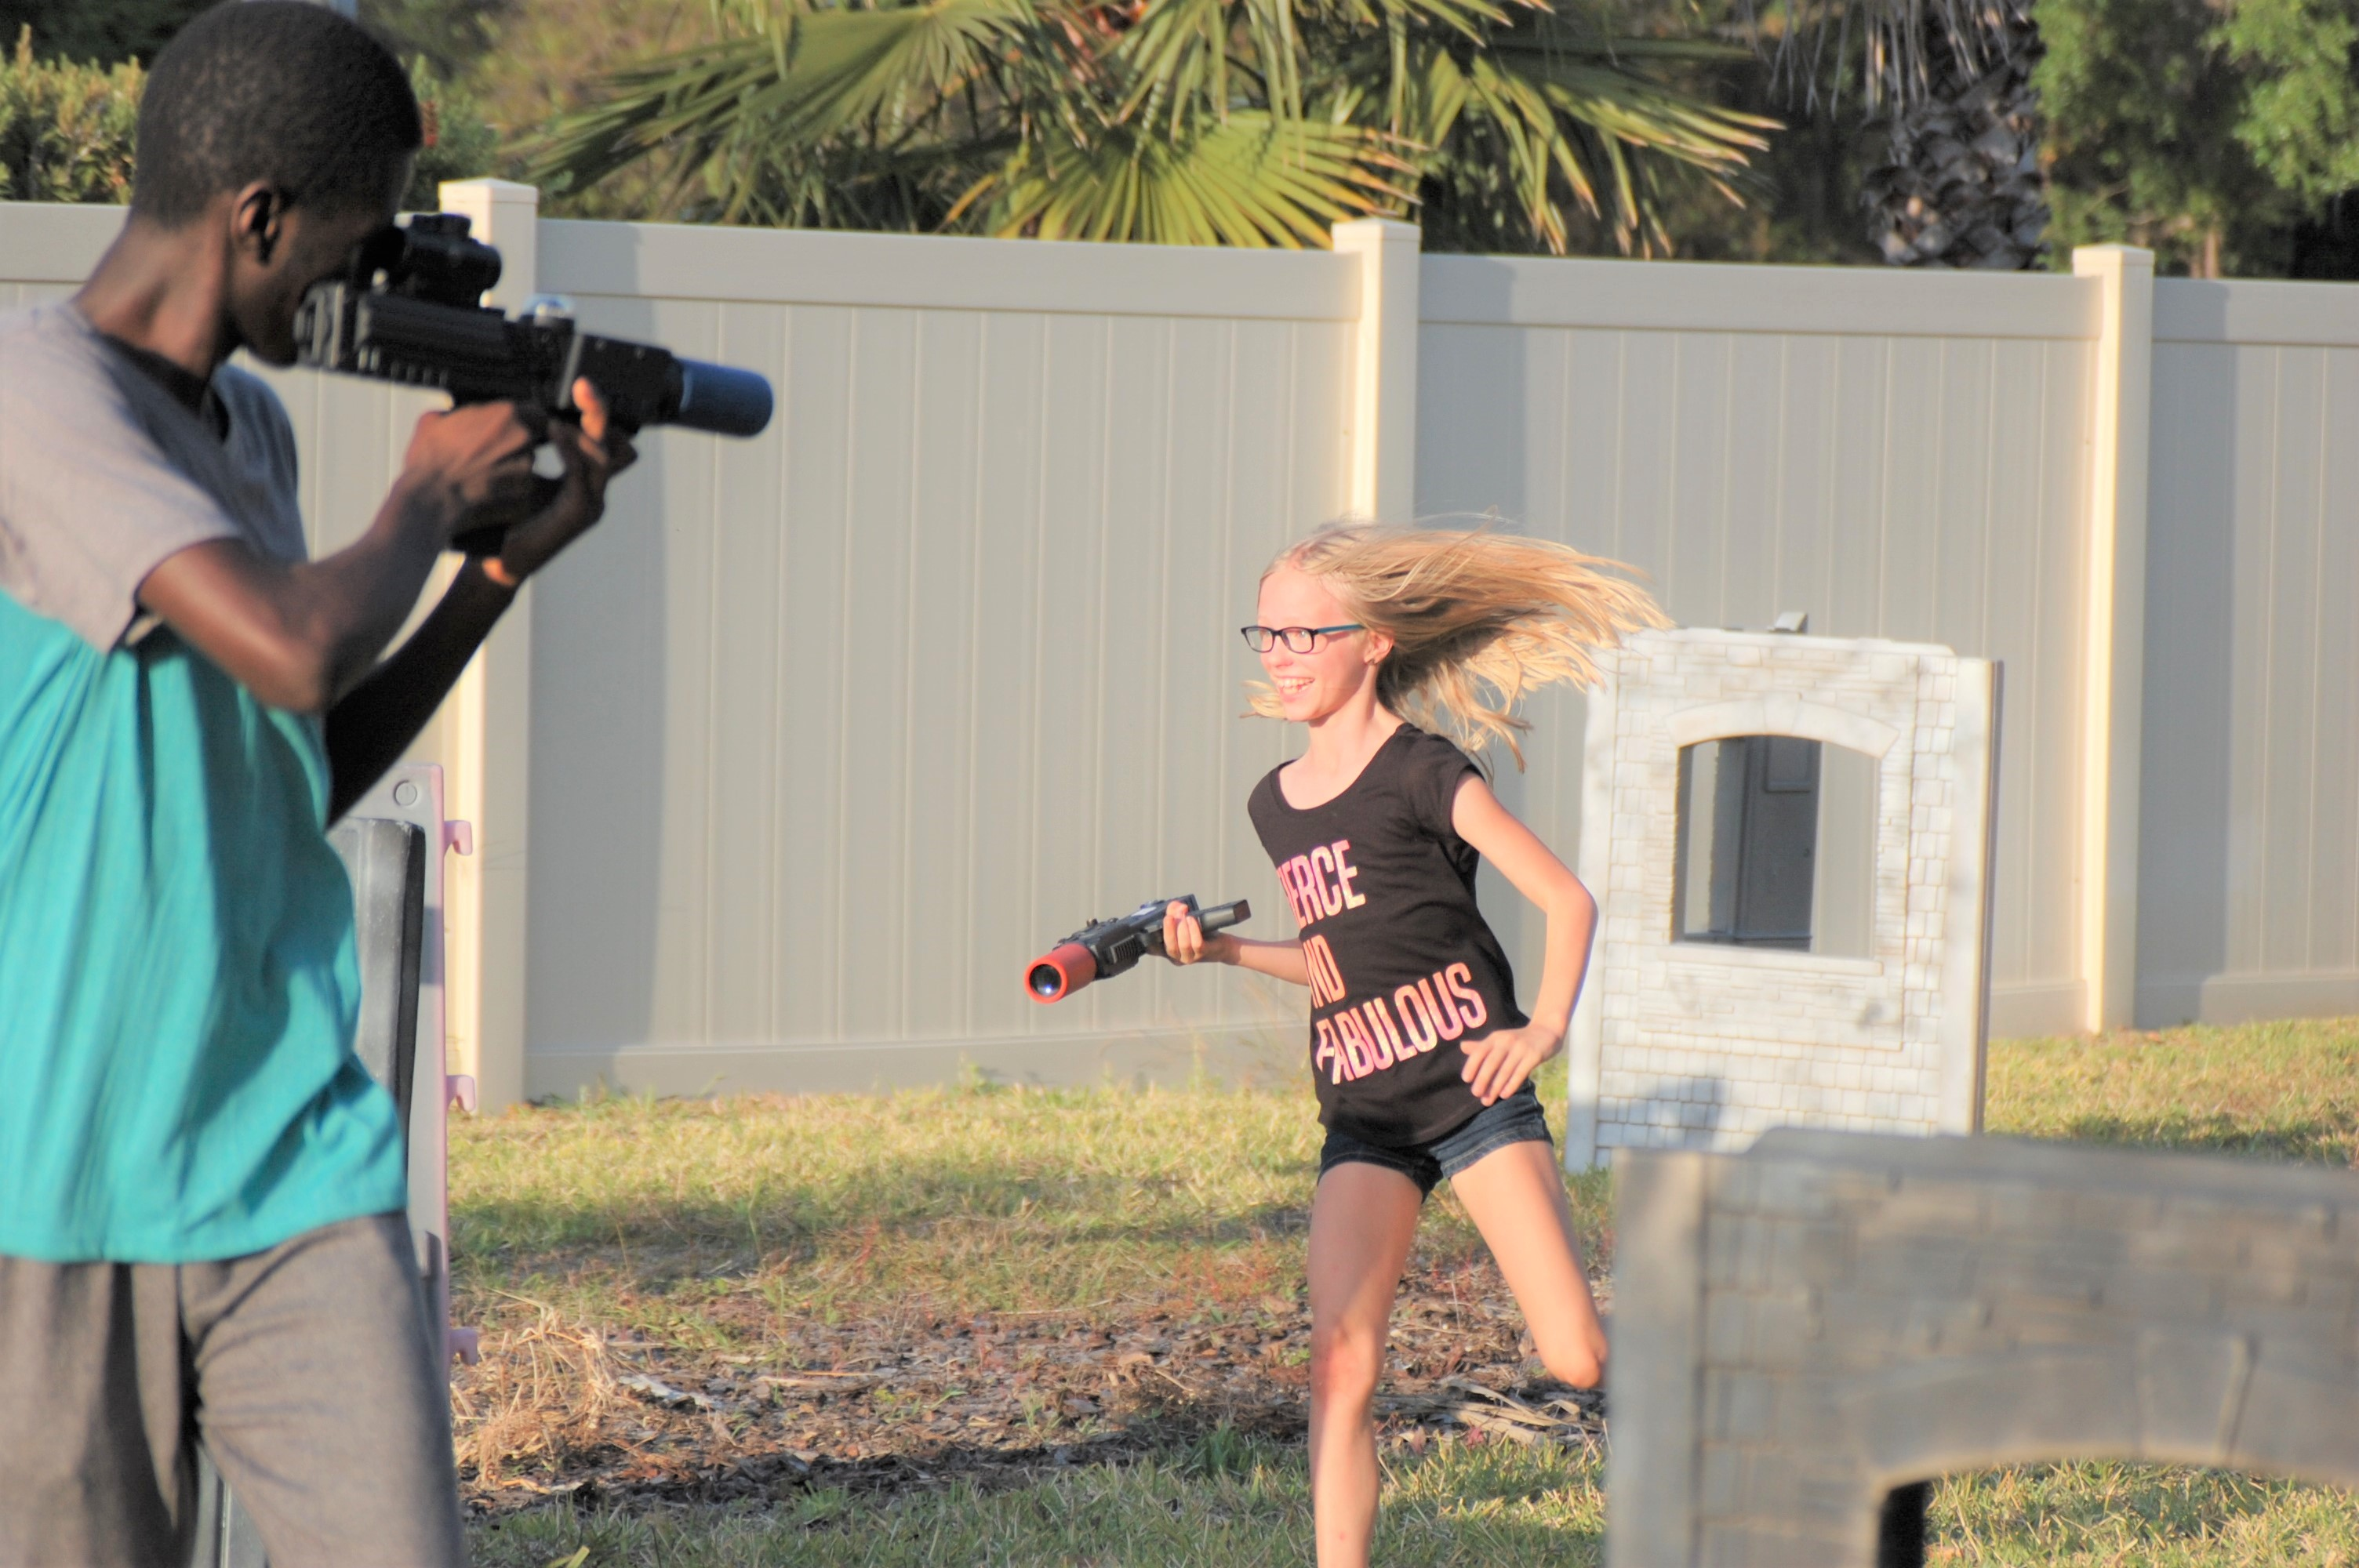 Mobile Laser Tag Events in Tampa,FL (4)